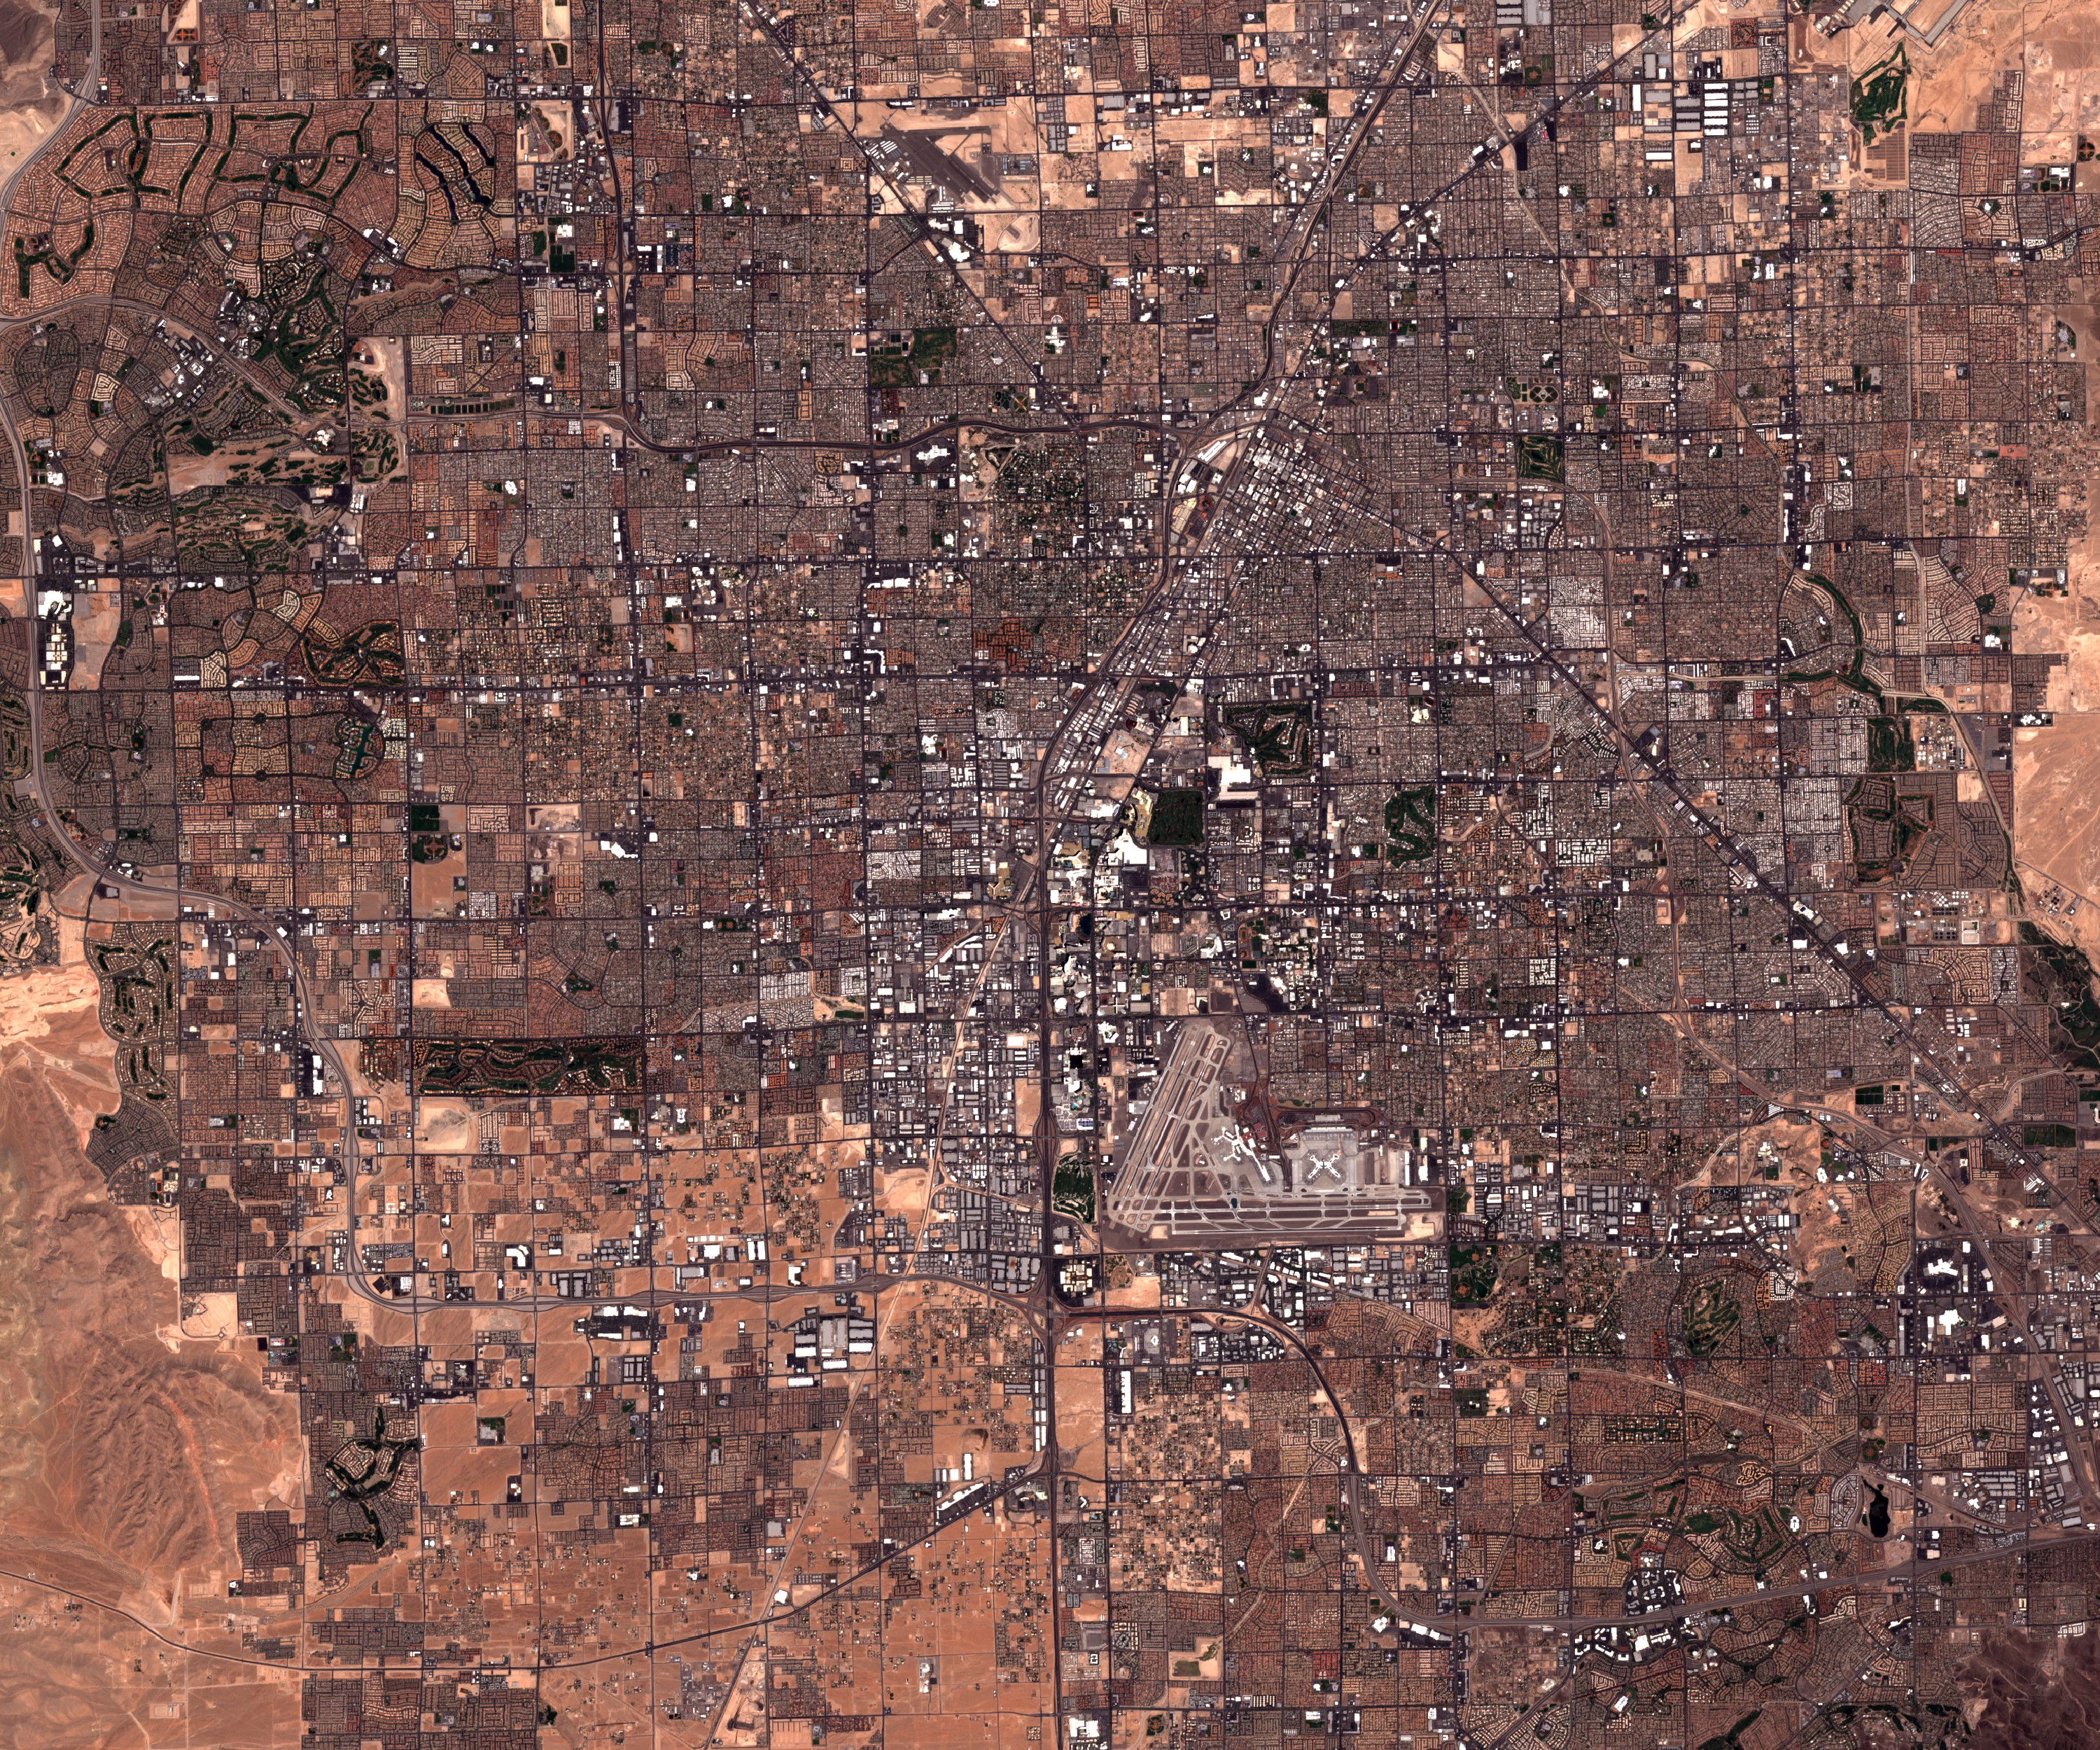 Las Vegas - Strip - satelllite - Sentinel - Sentinel-2A - ESA - Copernicus - Welcome to the fabulous Las Vegas - Bellagio - Wynn - Louxor